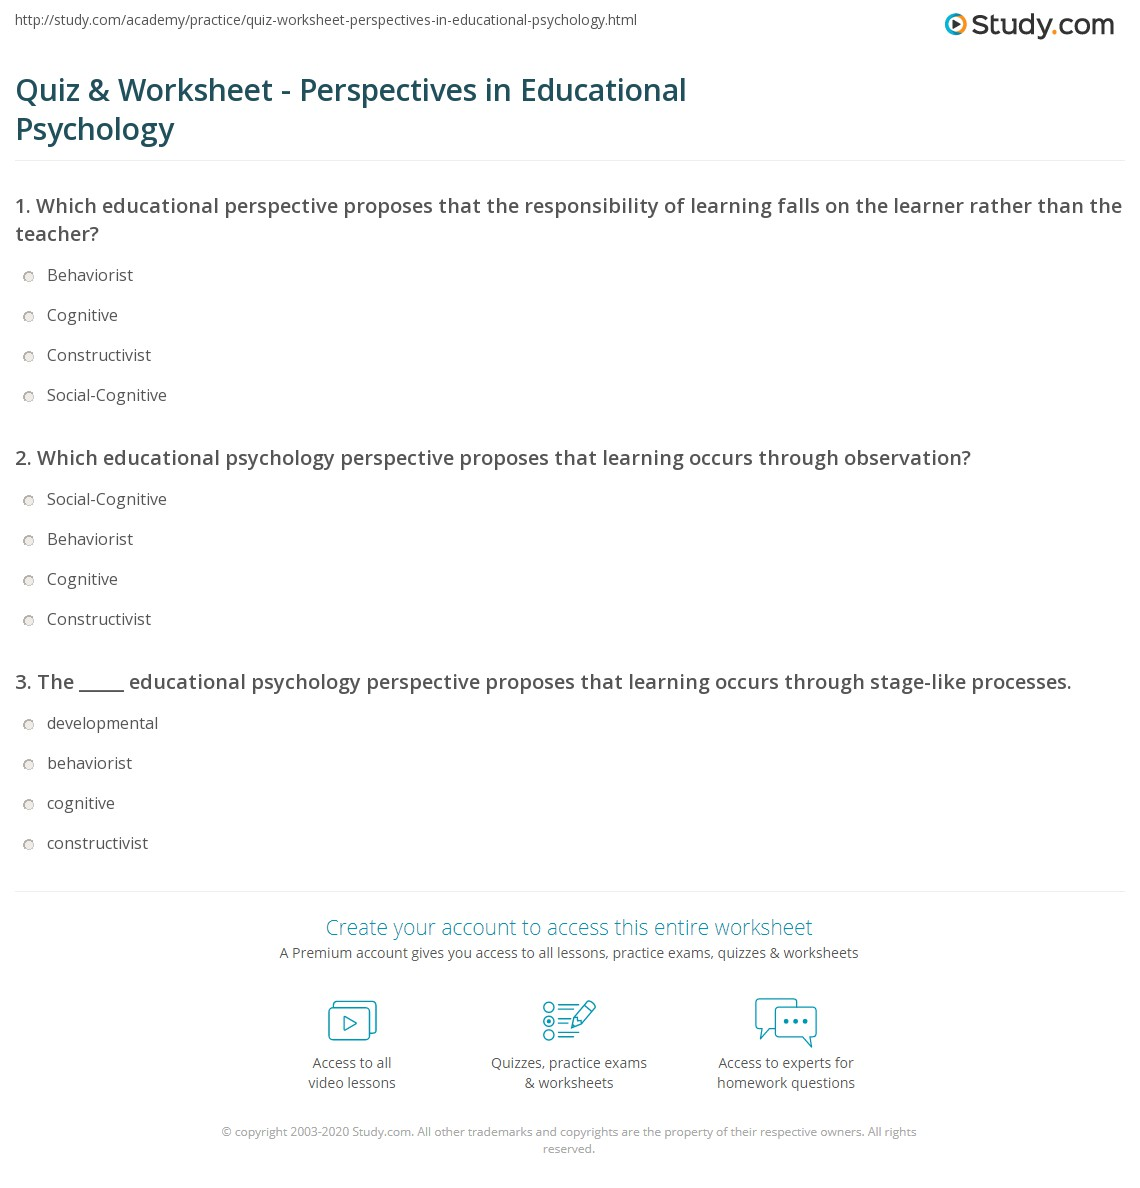 Quiz & Worksheet - Perspectives in Educational Psychology | Study.com